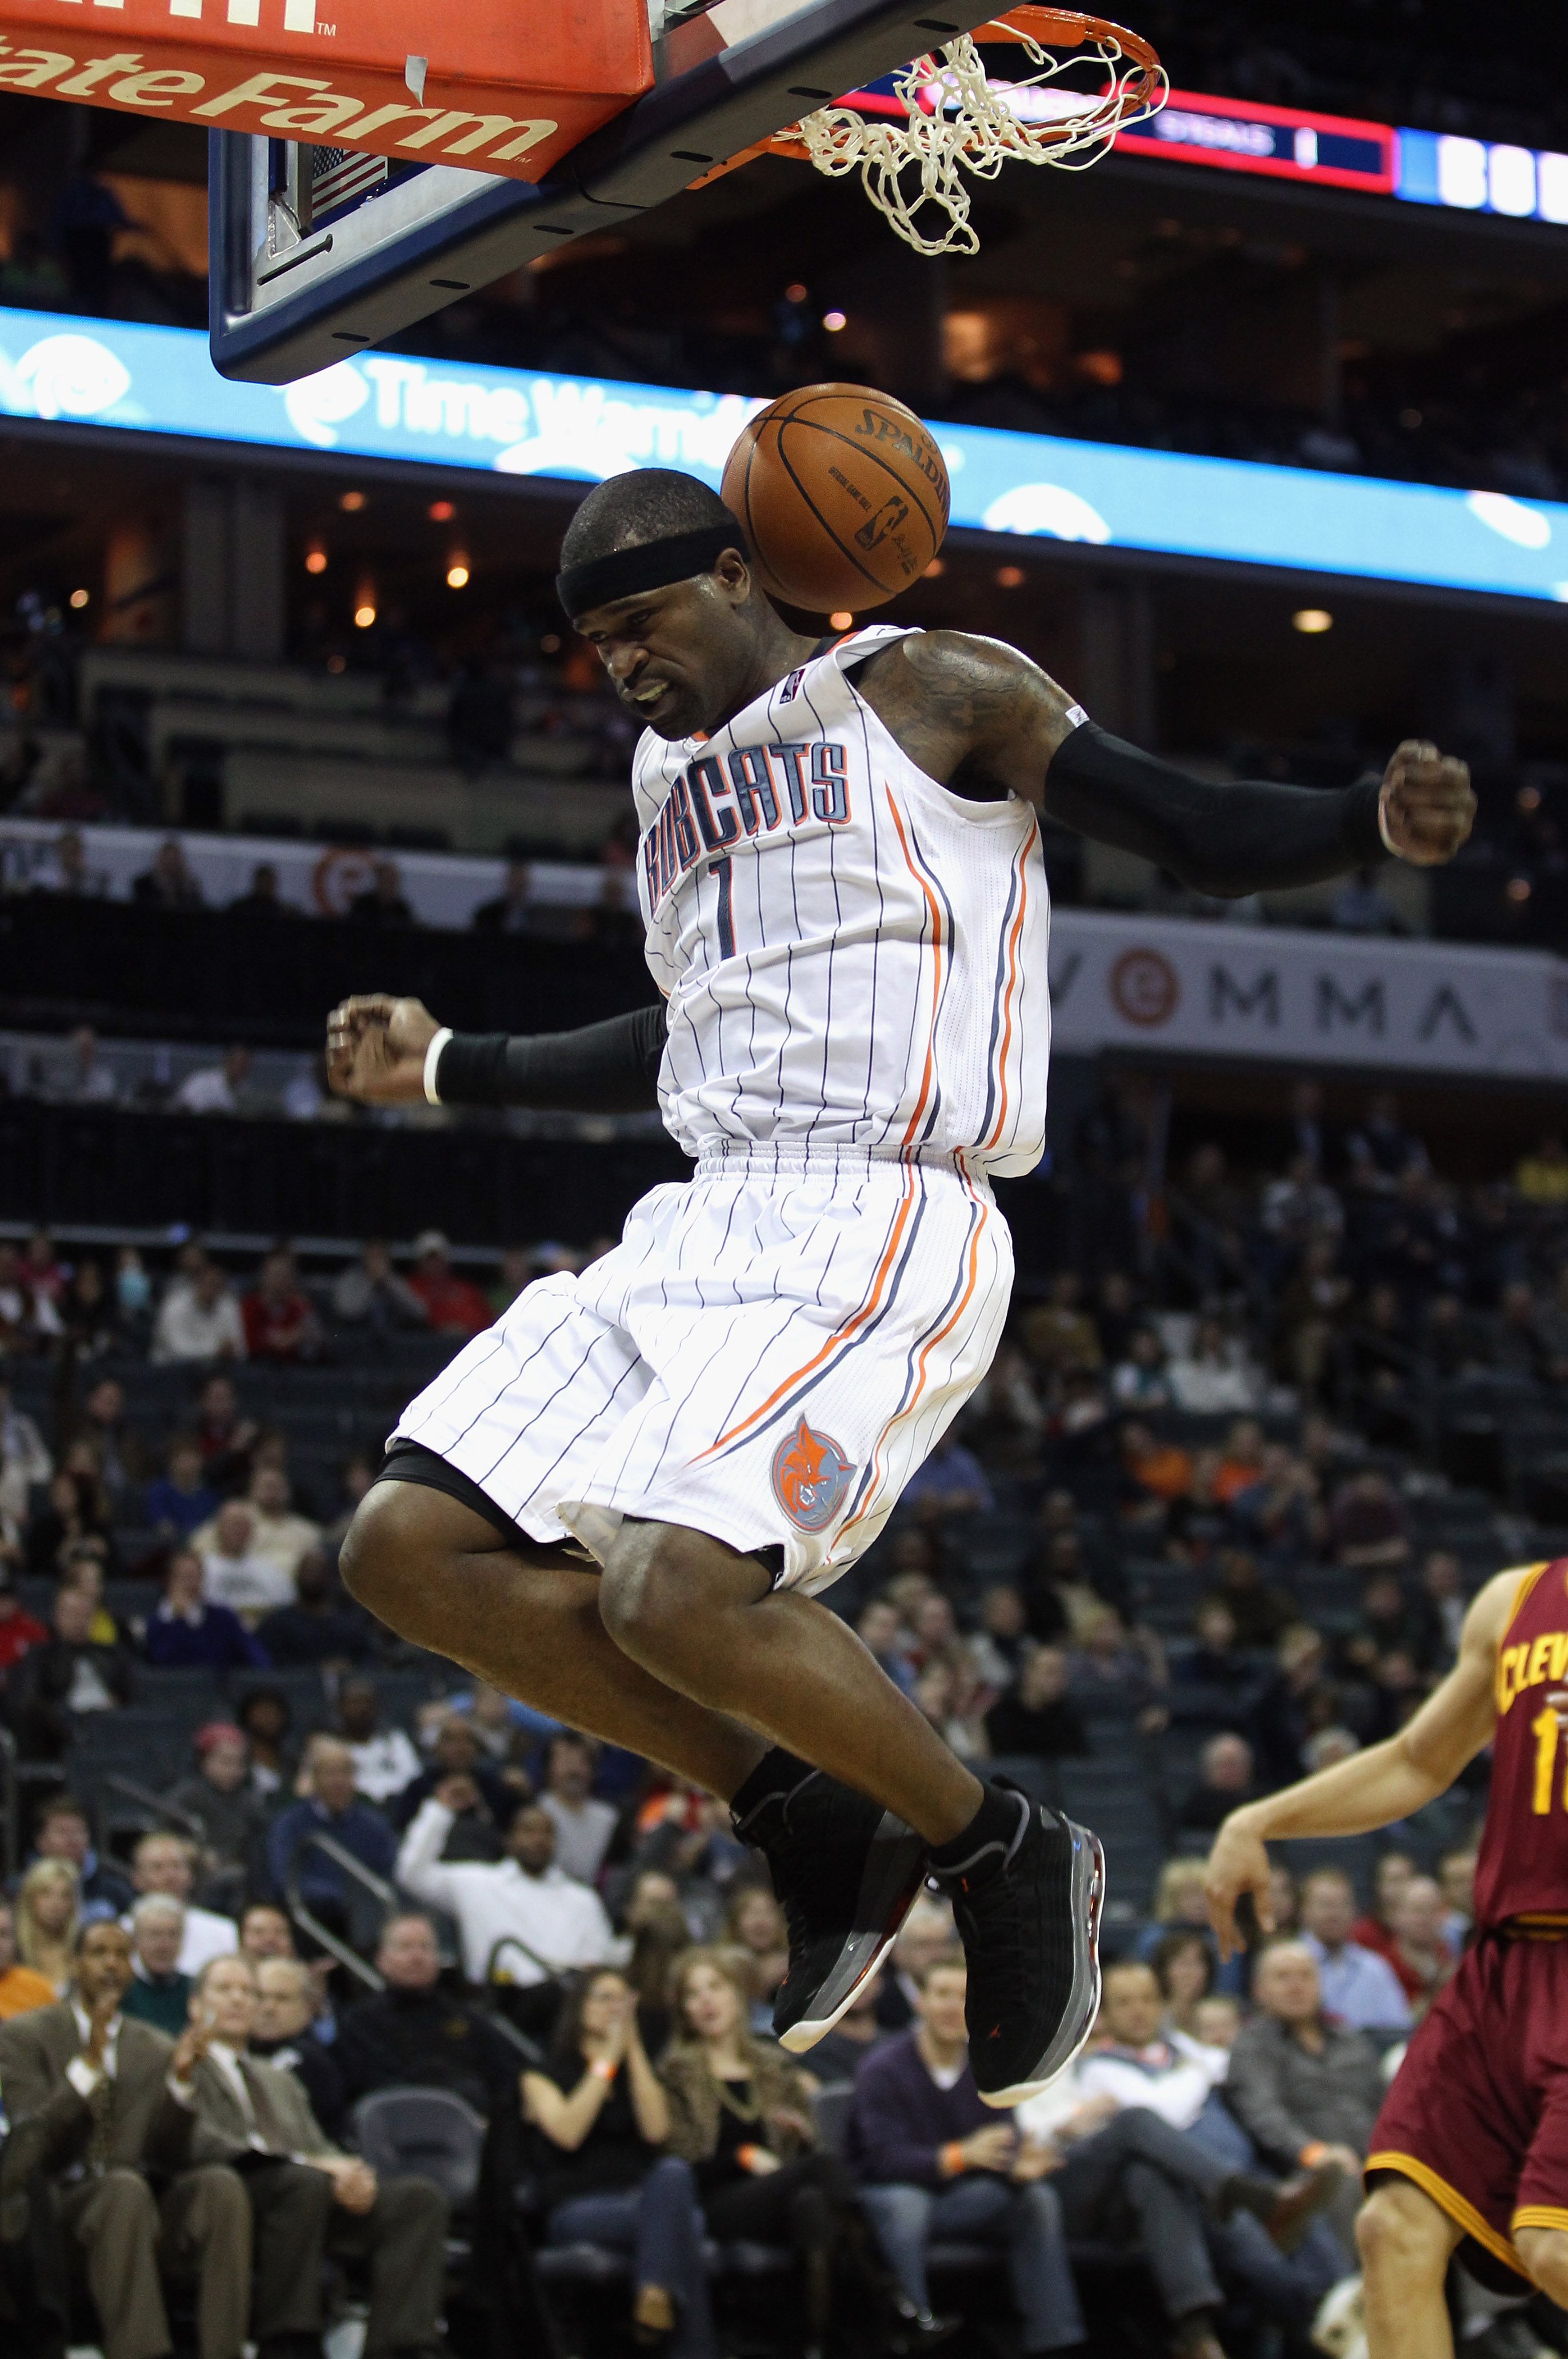 CHARLOTTE, NC - DECEMBER 29:  Stephen Jackson #1 of the Charlotte Bobcats dunks the ball against the Cleveland Cavaliers during their game at Time Warner Cable Arena on December 29, 2010 in Charlotte, North Carolina. NOTE TO USER: User expressly acknowled